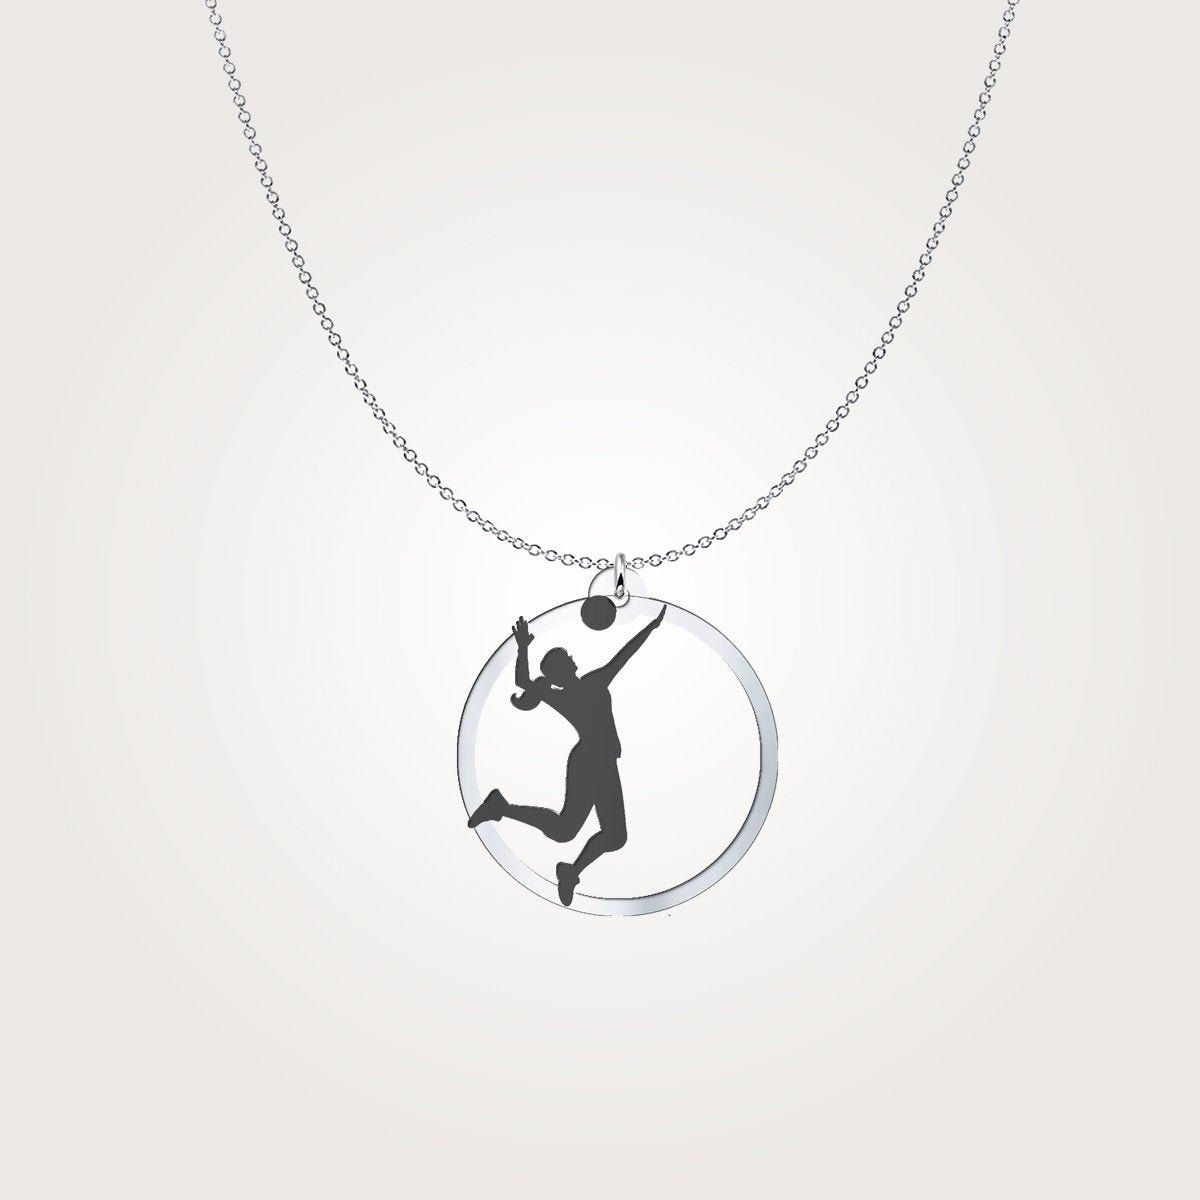 Volleyball Necklace Etsy In 2020 Volleyball Necklace Necklace Etsy Necklace